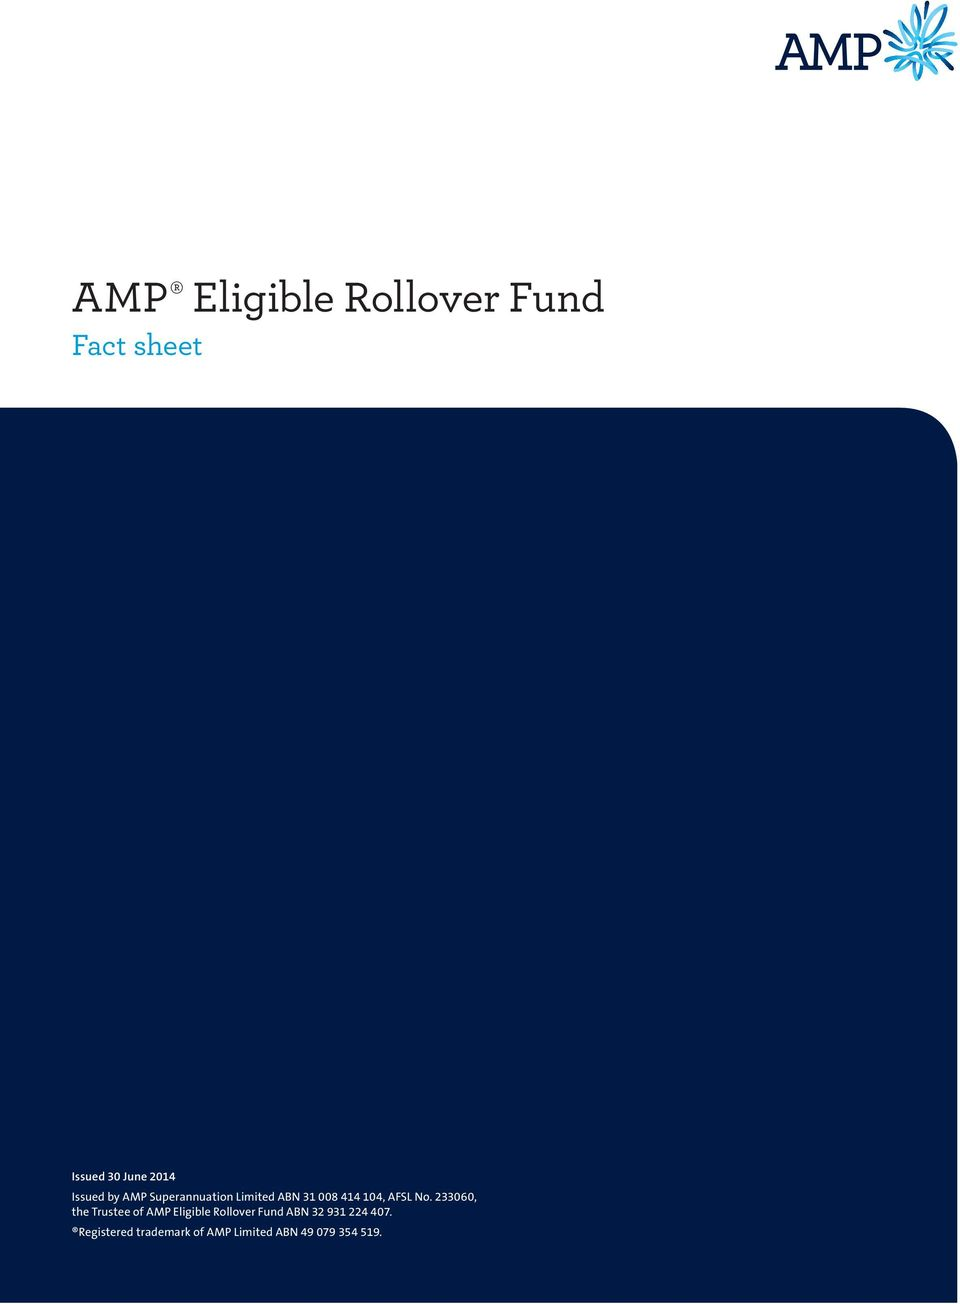 No. 233060, the Trustee of AMP Eligible Rollover Fund ABN 32